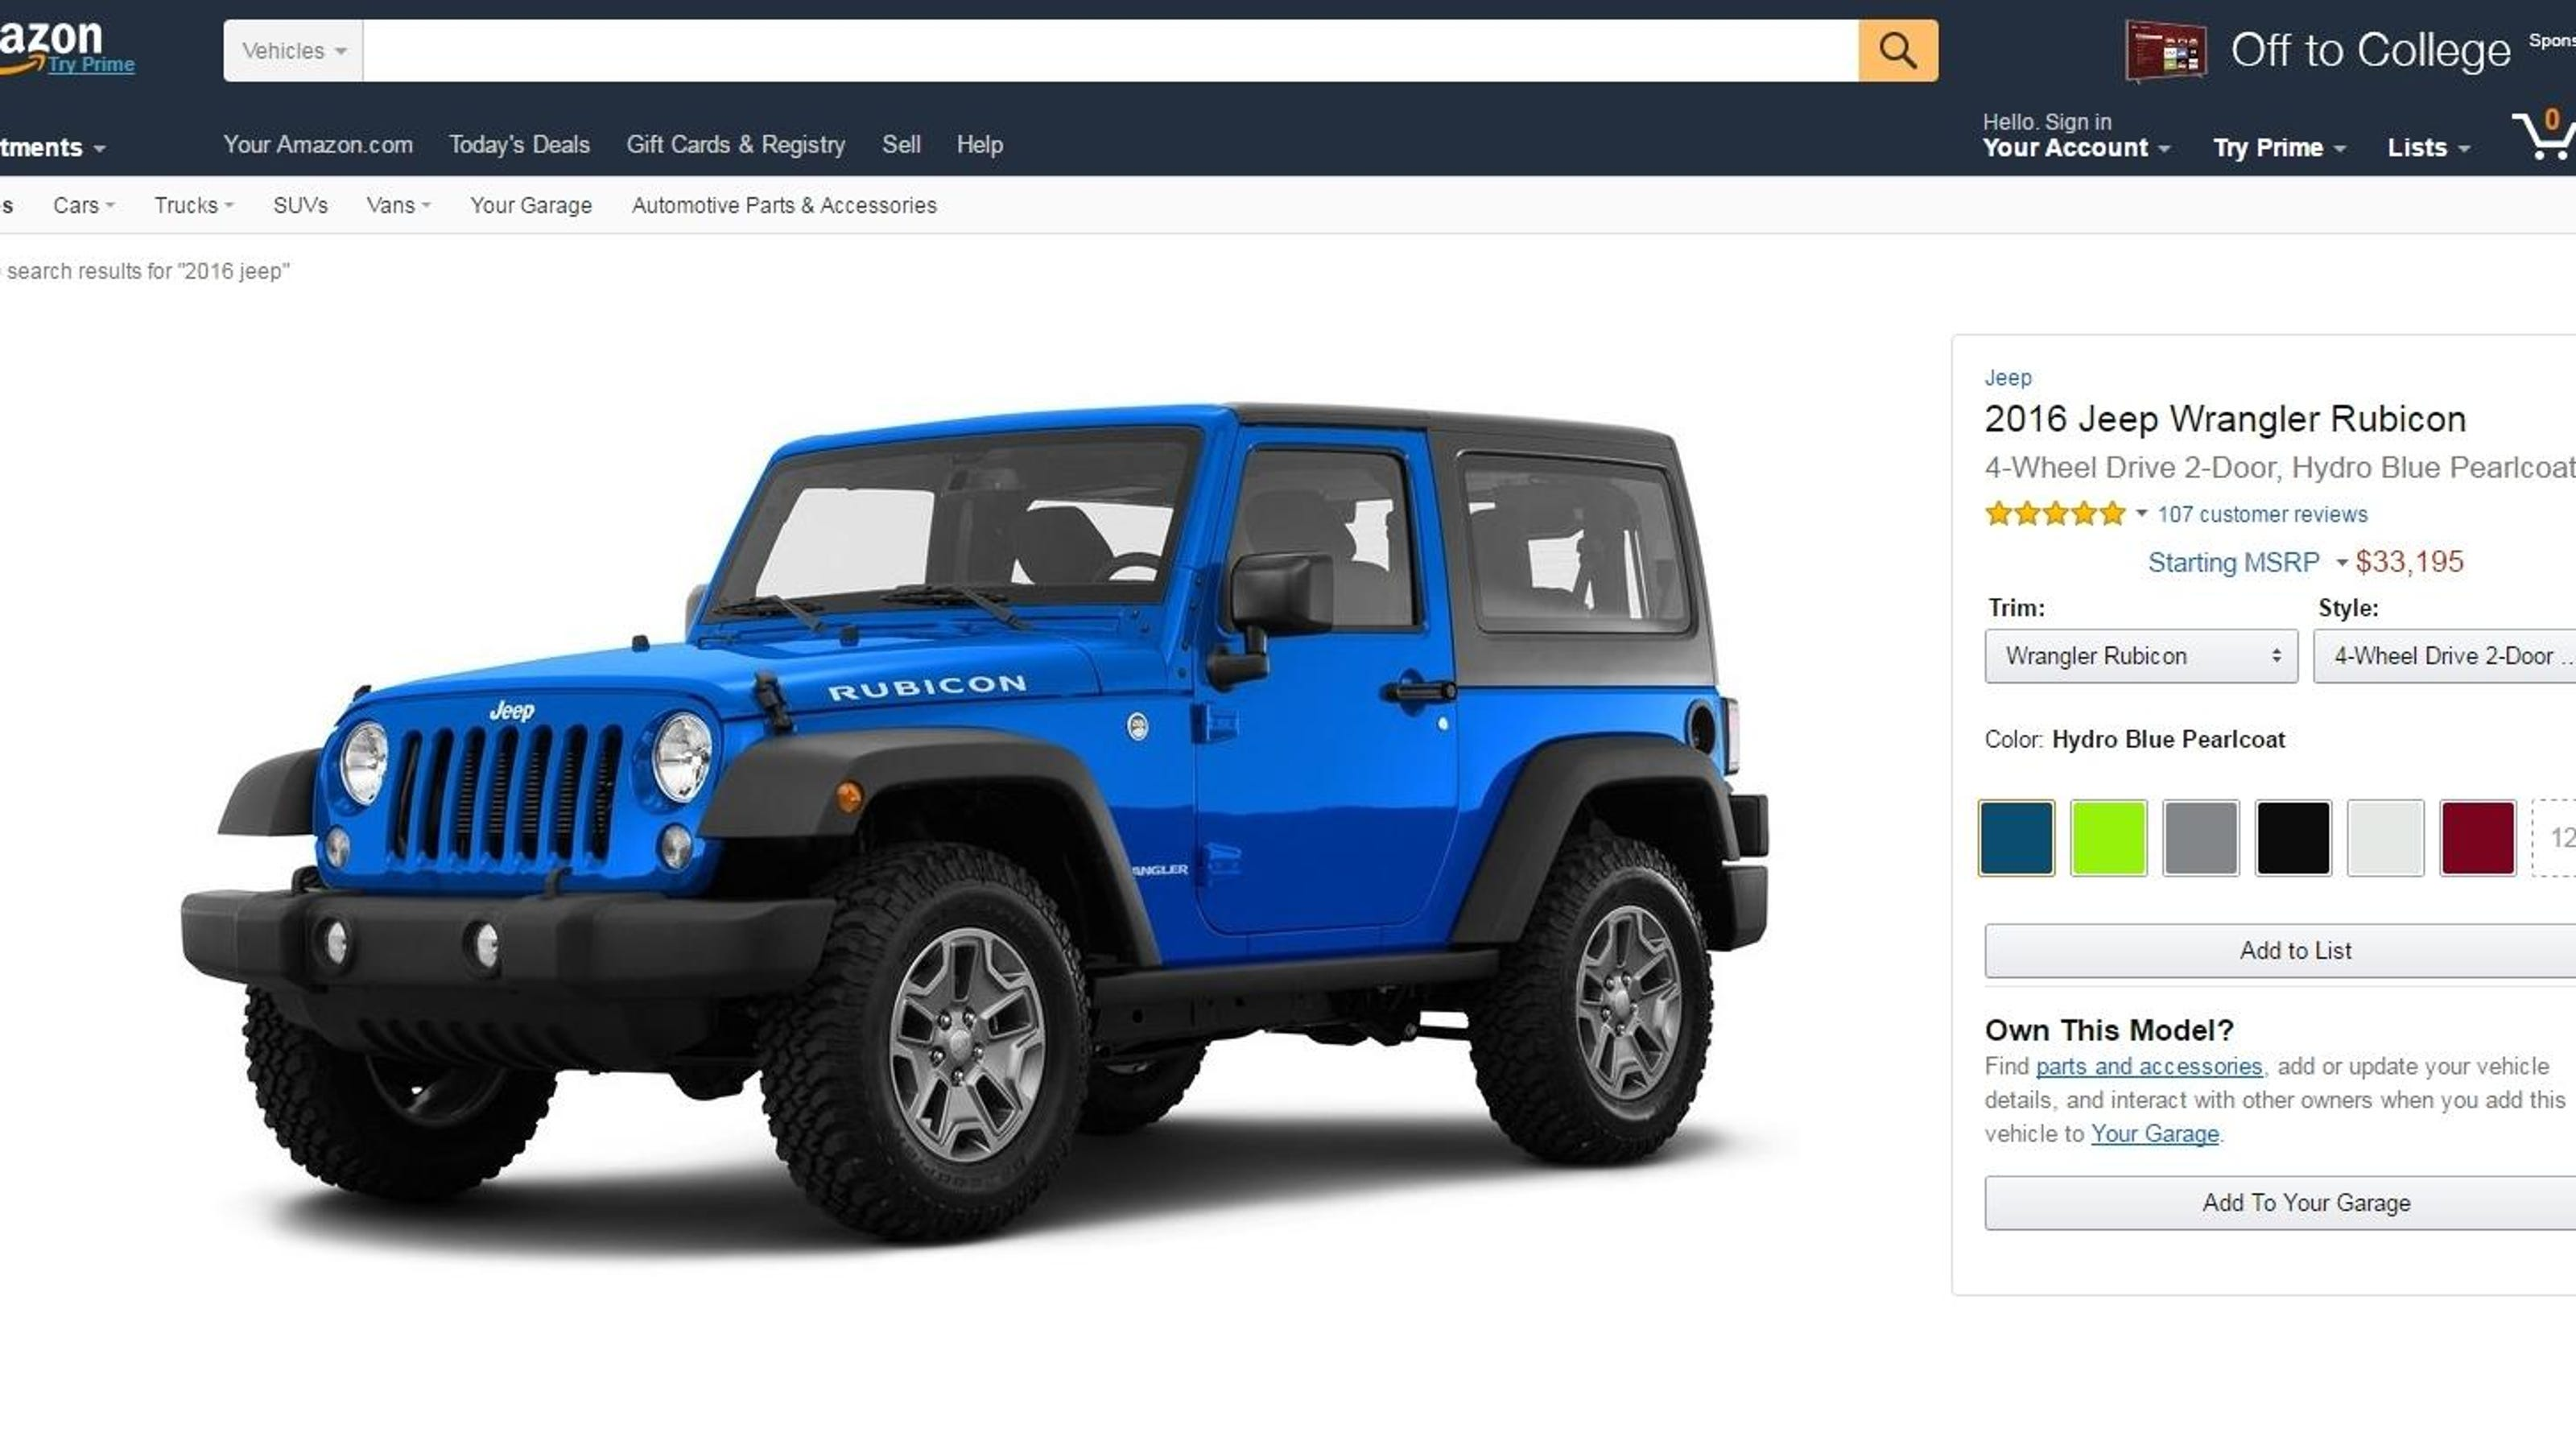 Amazon takes a step toward possible online car sales